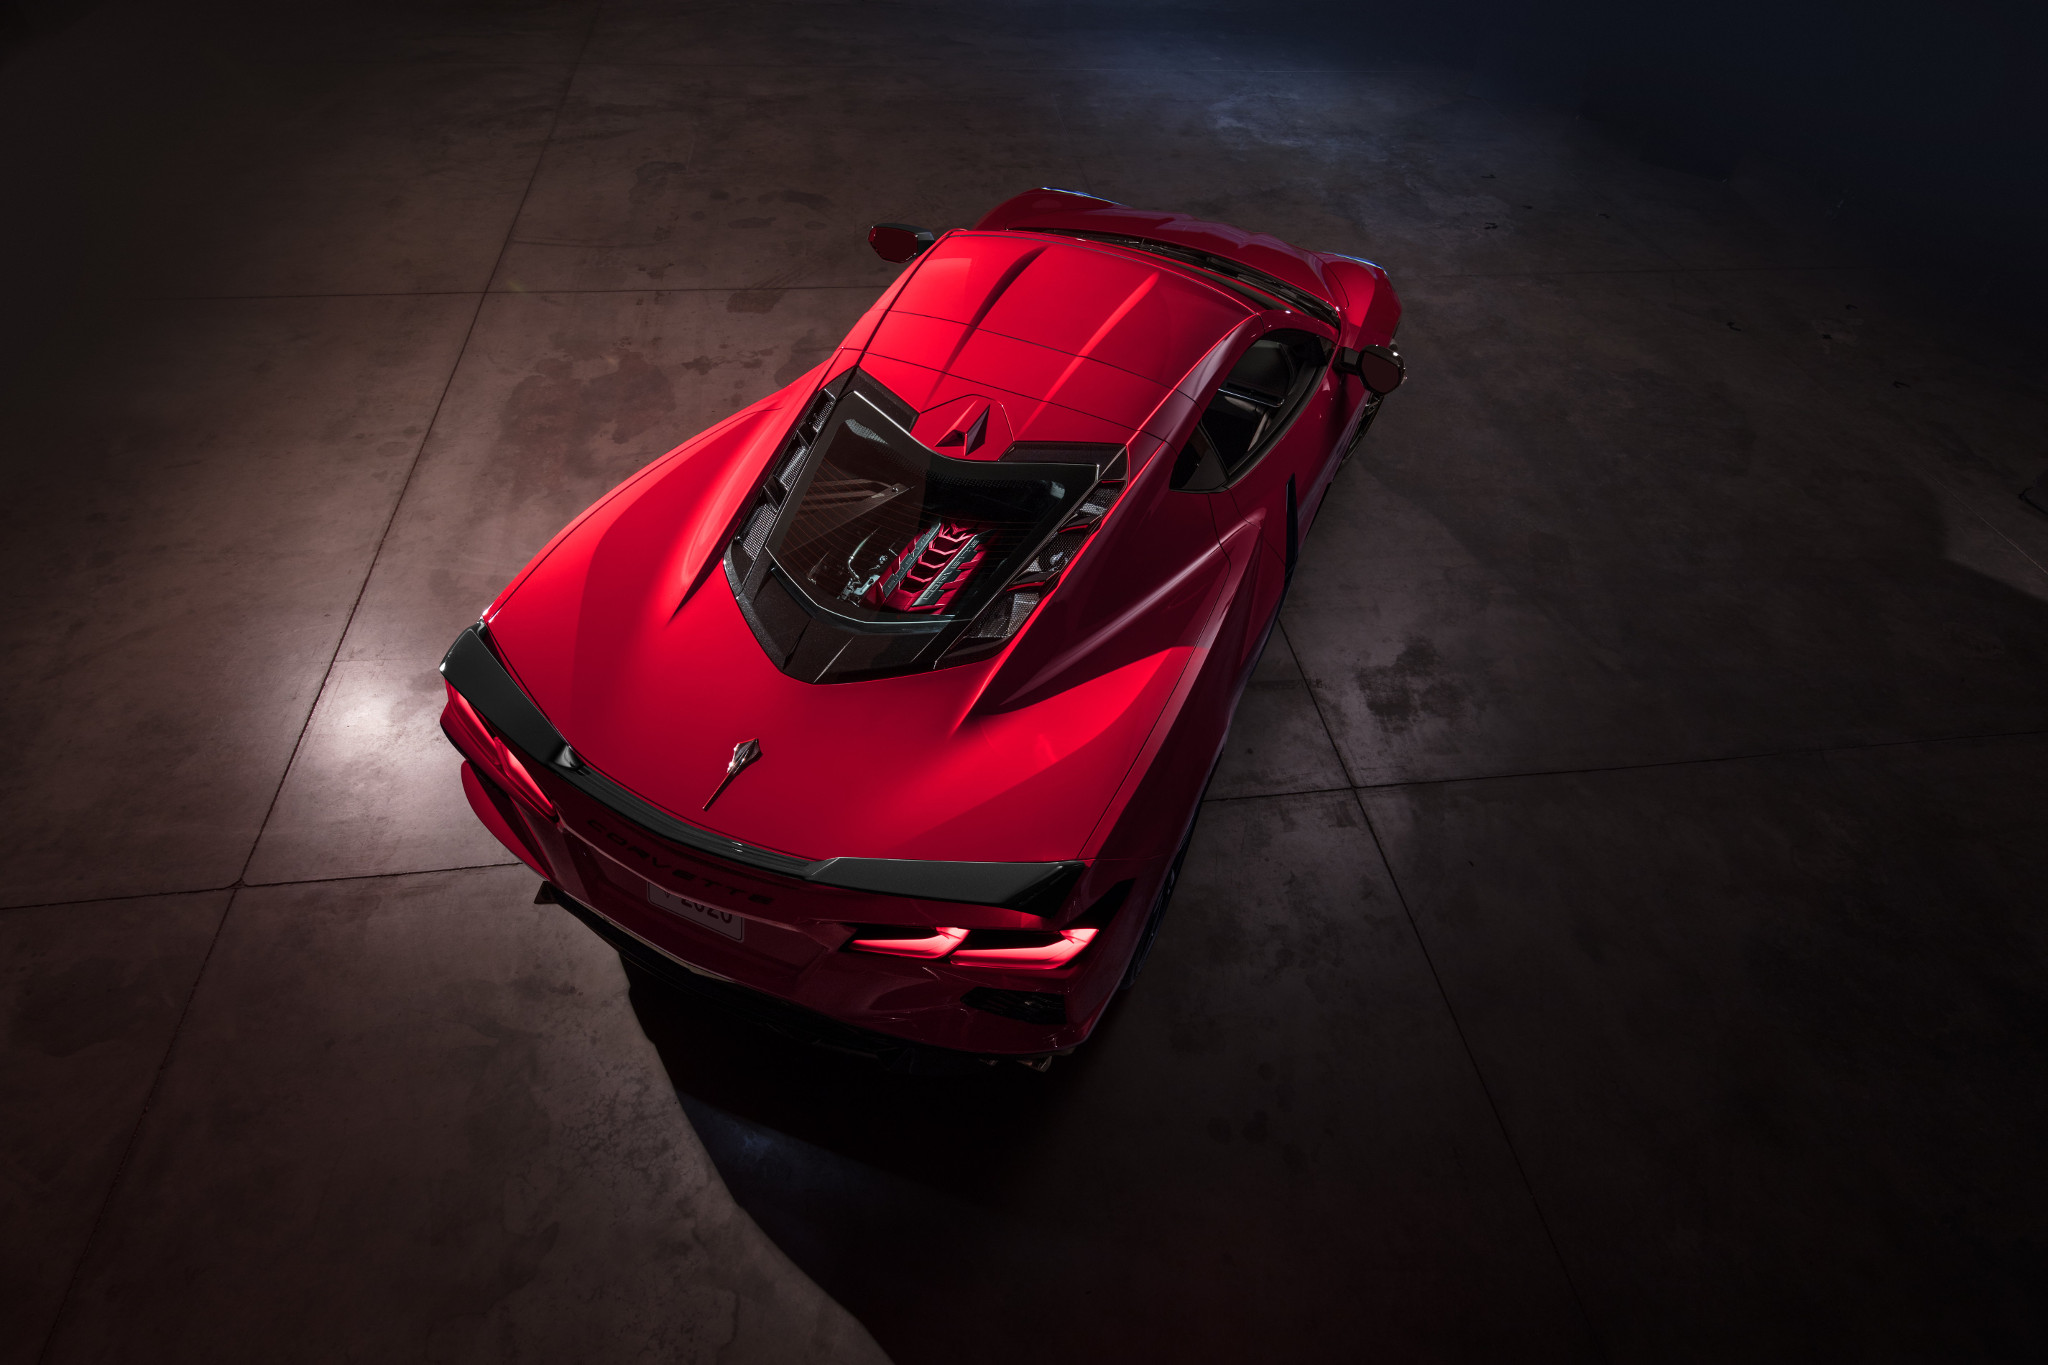 10 Biggest News Stories of the Week: 2020 Chevrolet Corvette Blows Gladiator's Doors Off